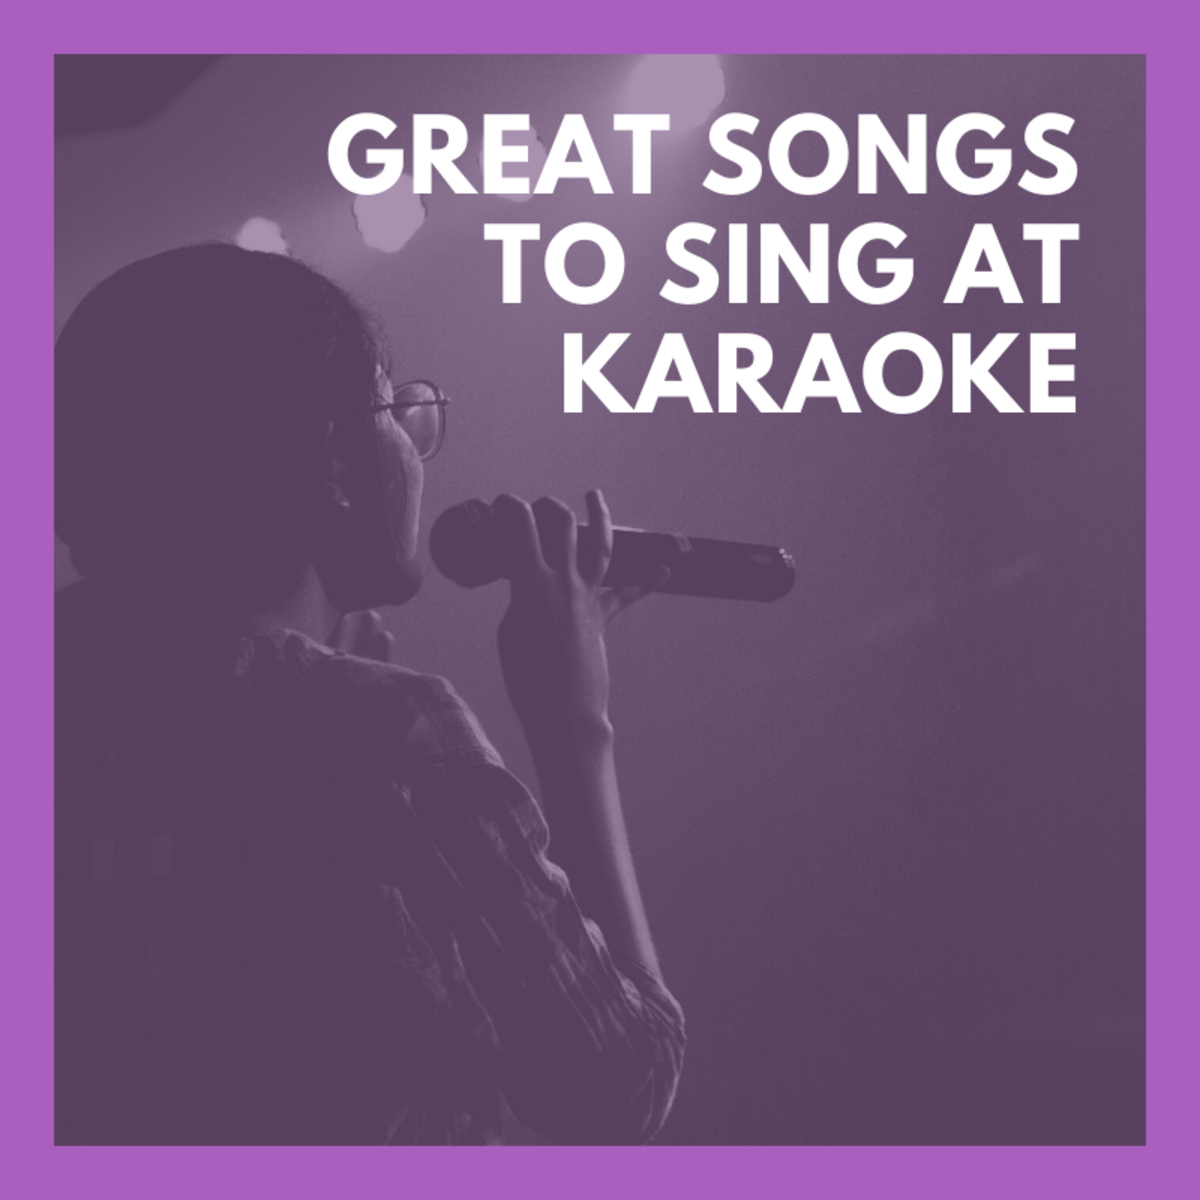 The 100 Best Rock Songs to Sing at Karaoke